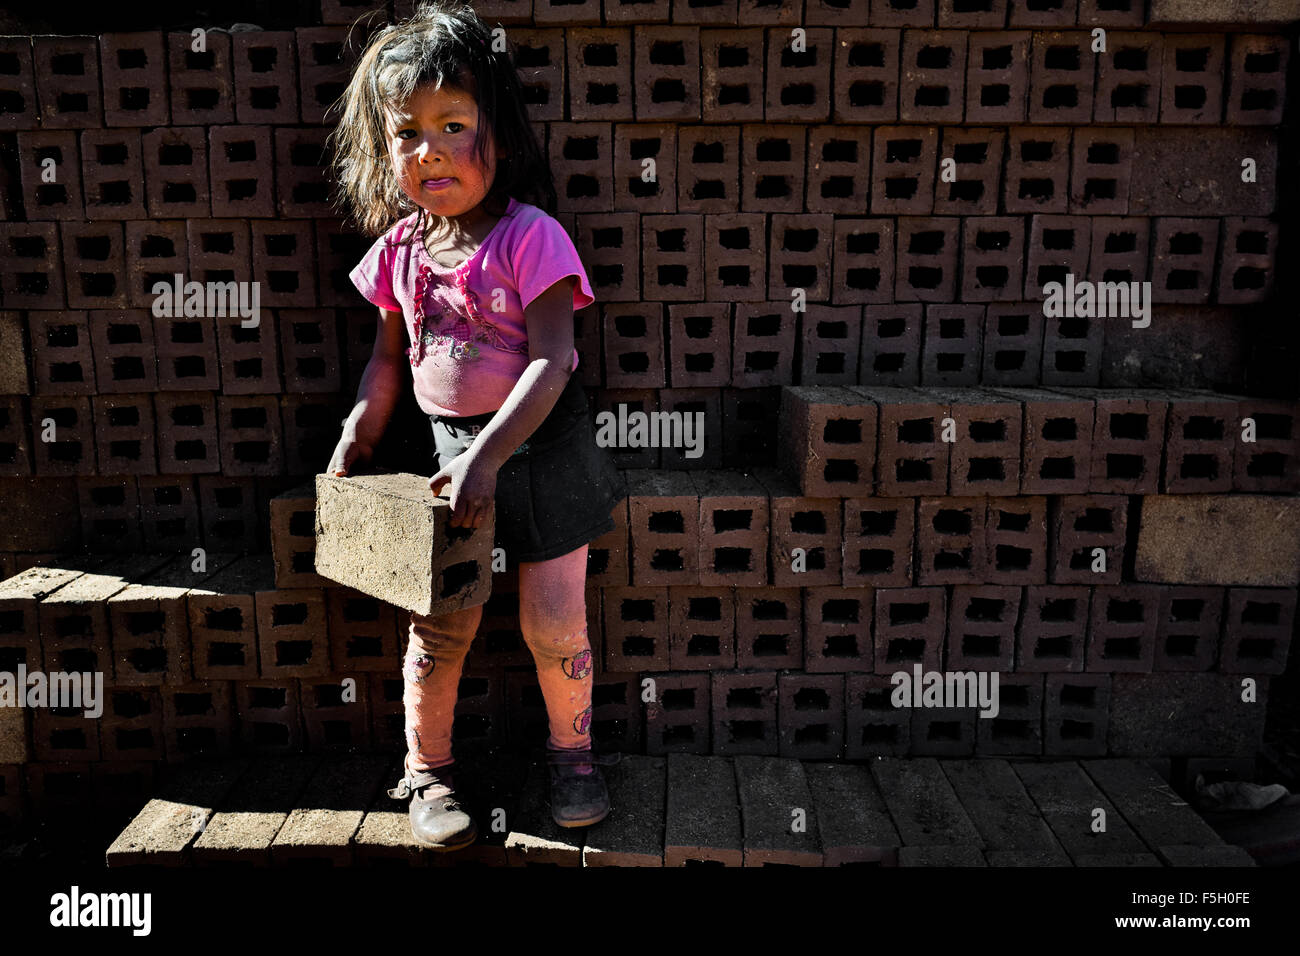 A 5-year-old Peruvian girl carries bricks at a brick factory in the outskirts of Puno, Peru. - Stock Image